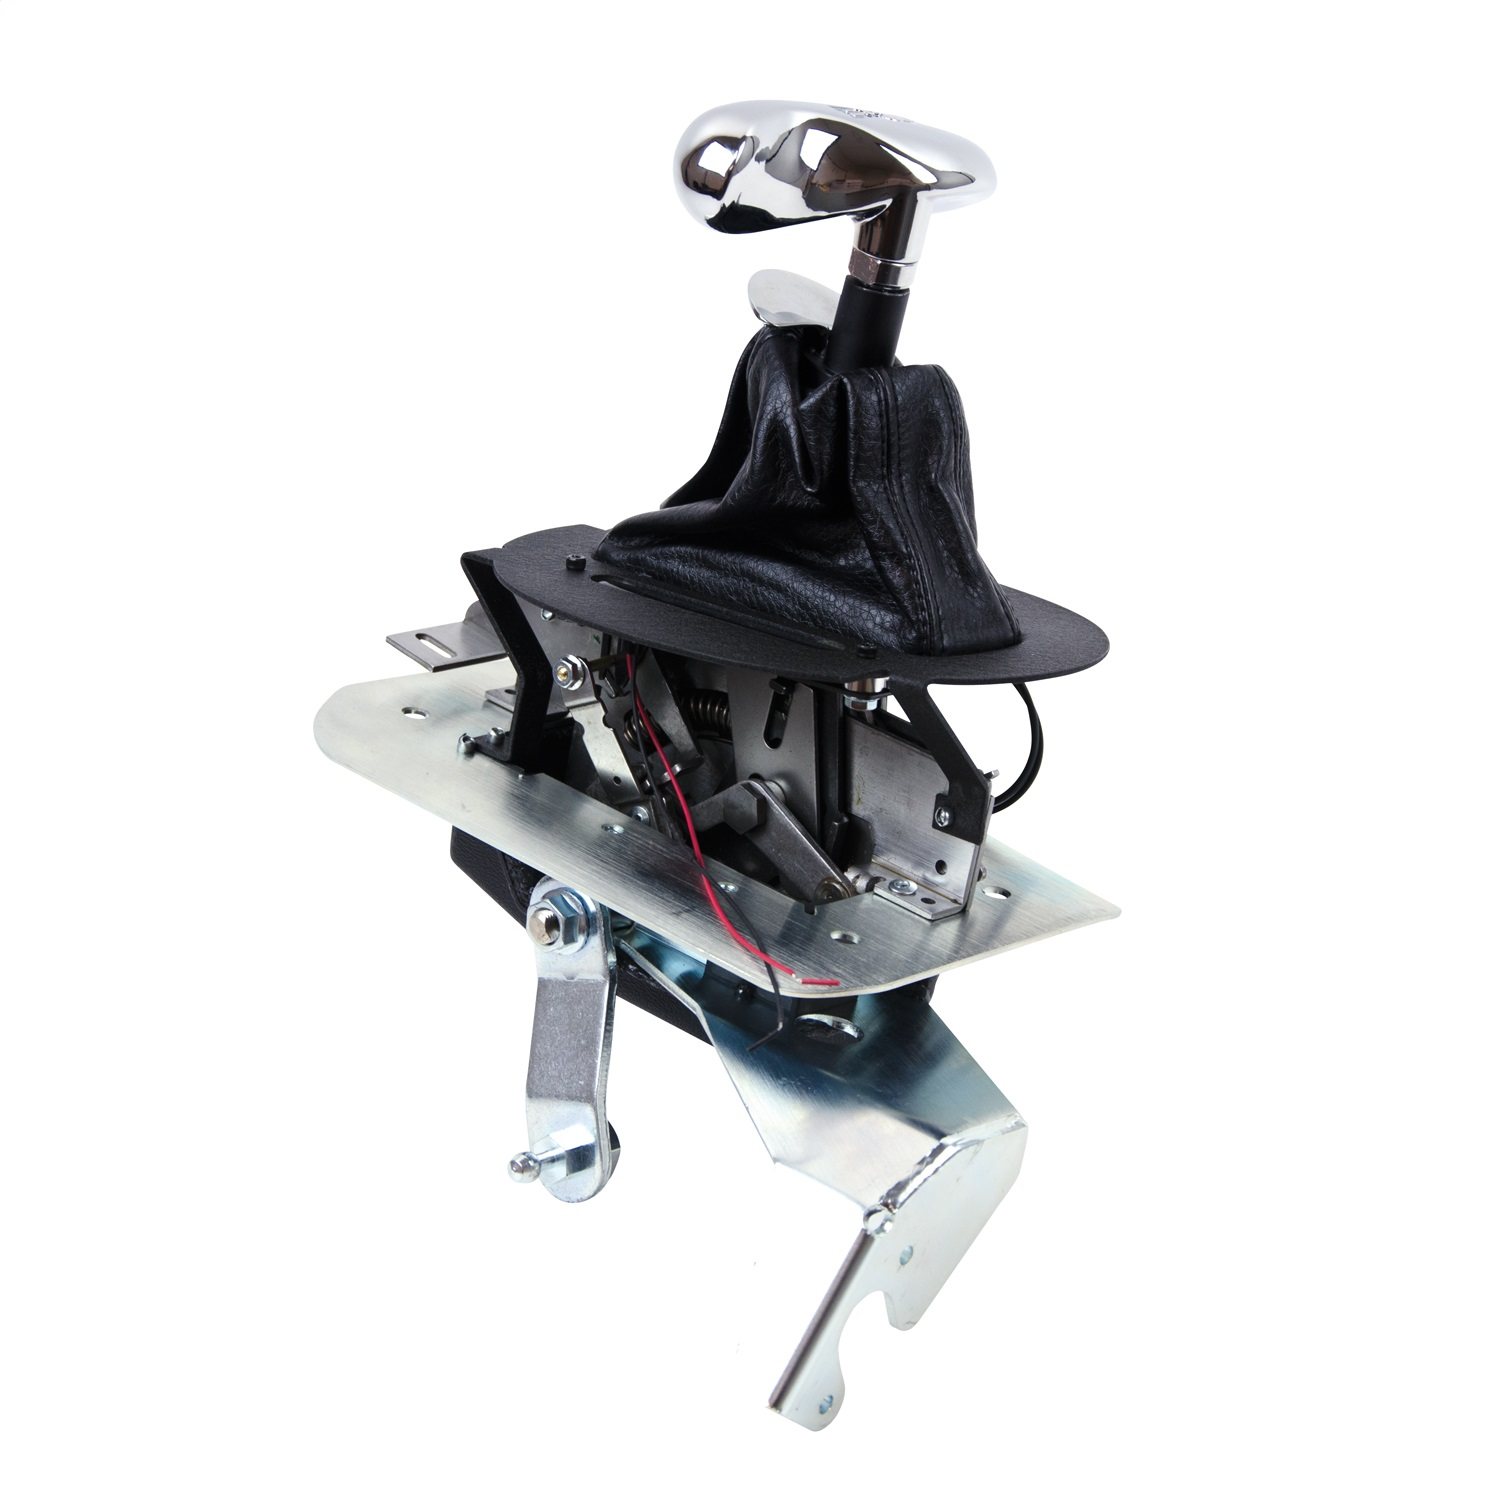 Automatic Transmission: B&M 81001 Console Hammer Automatic Transmission Shifter